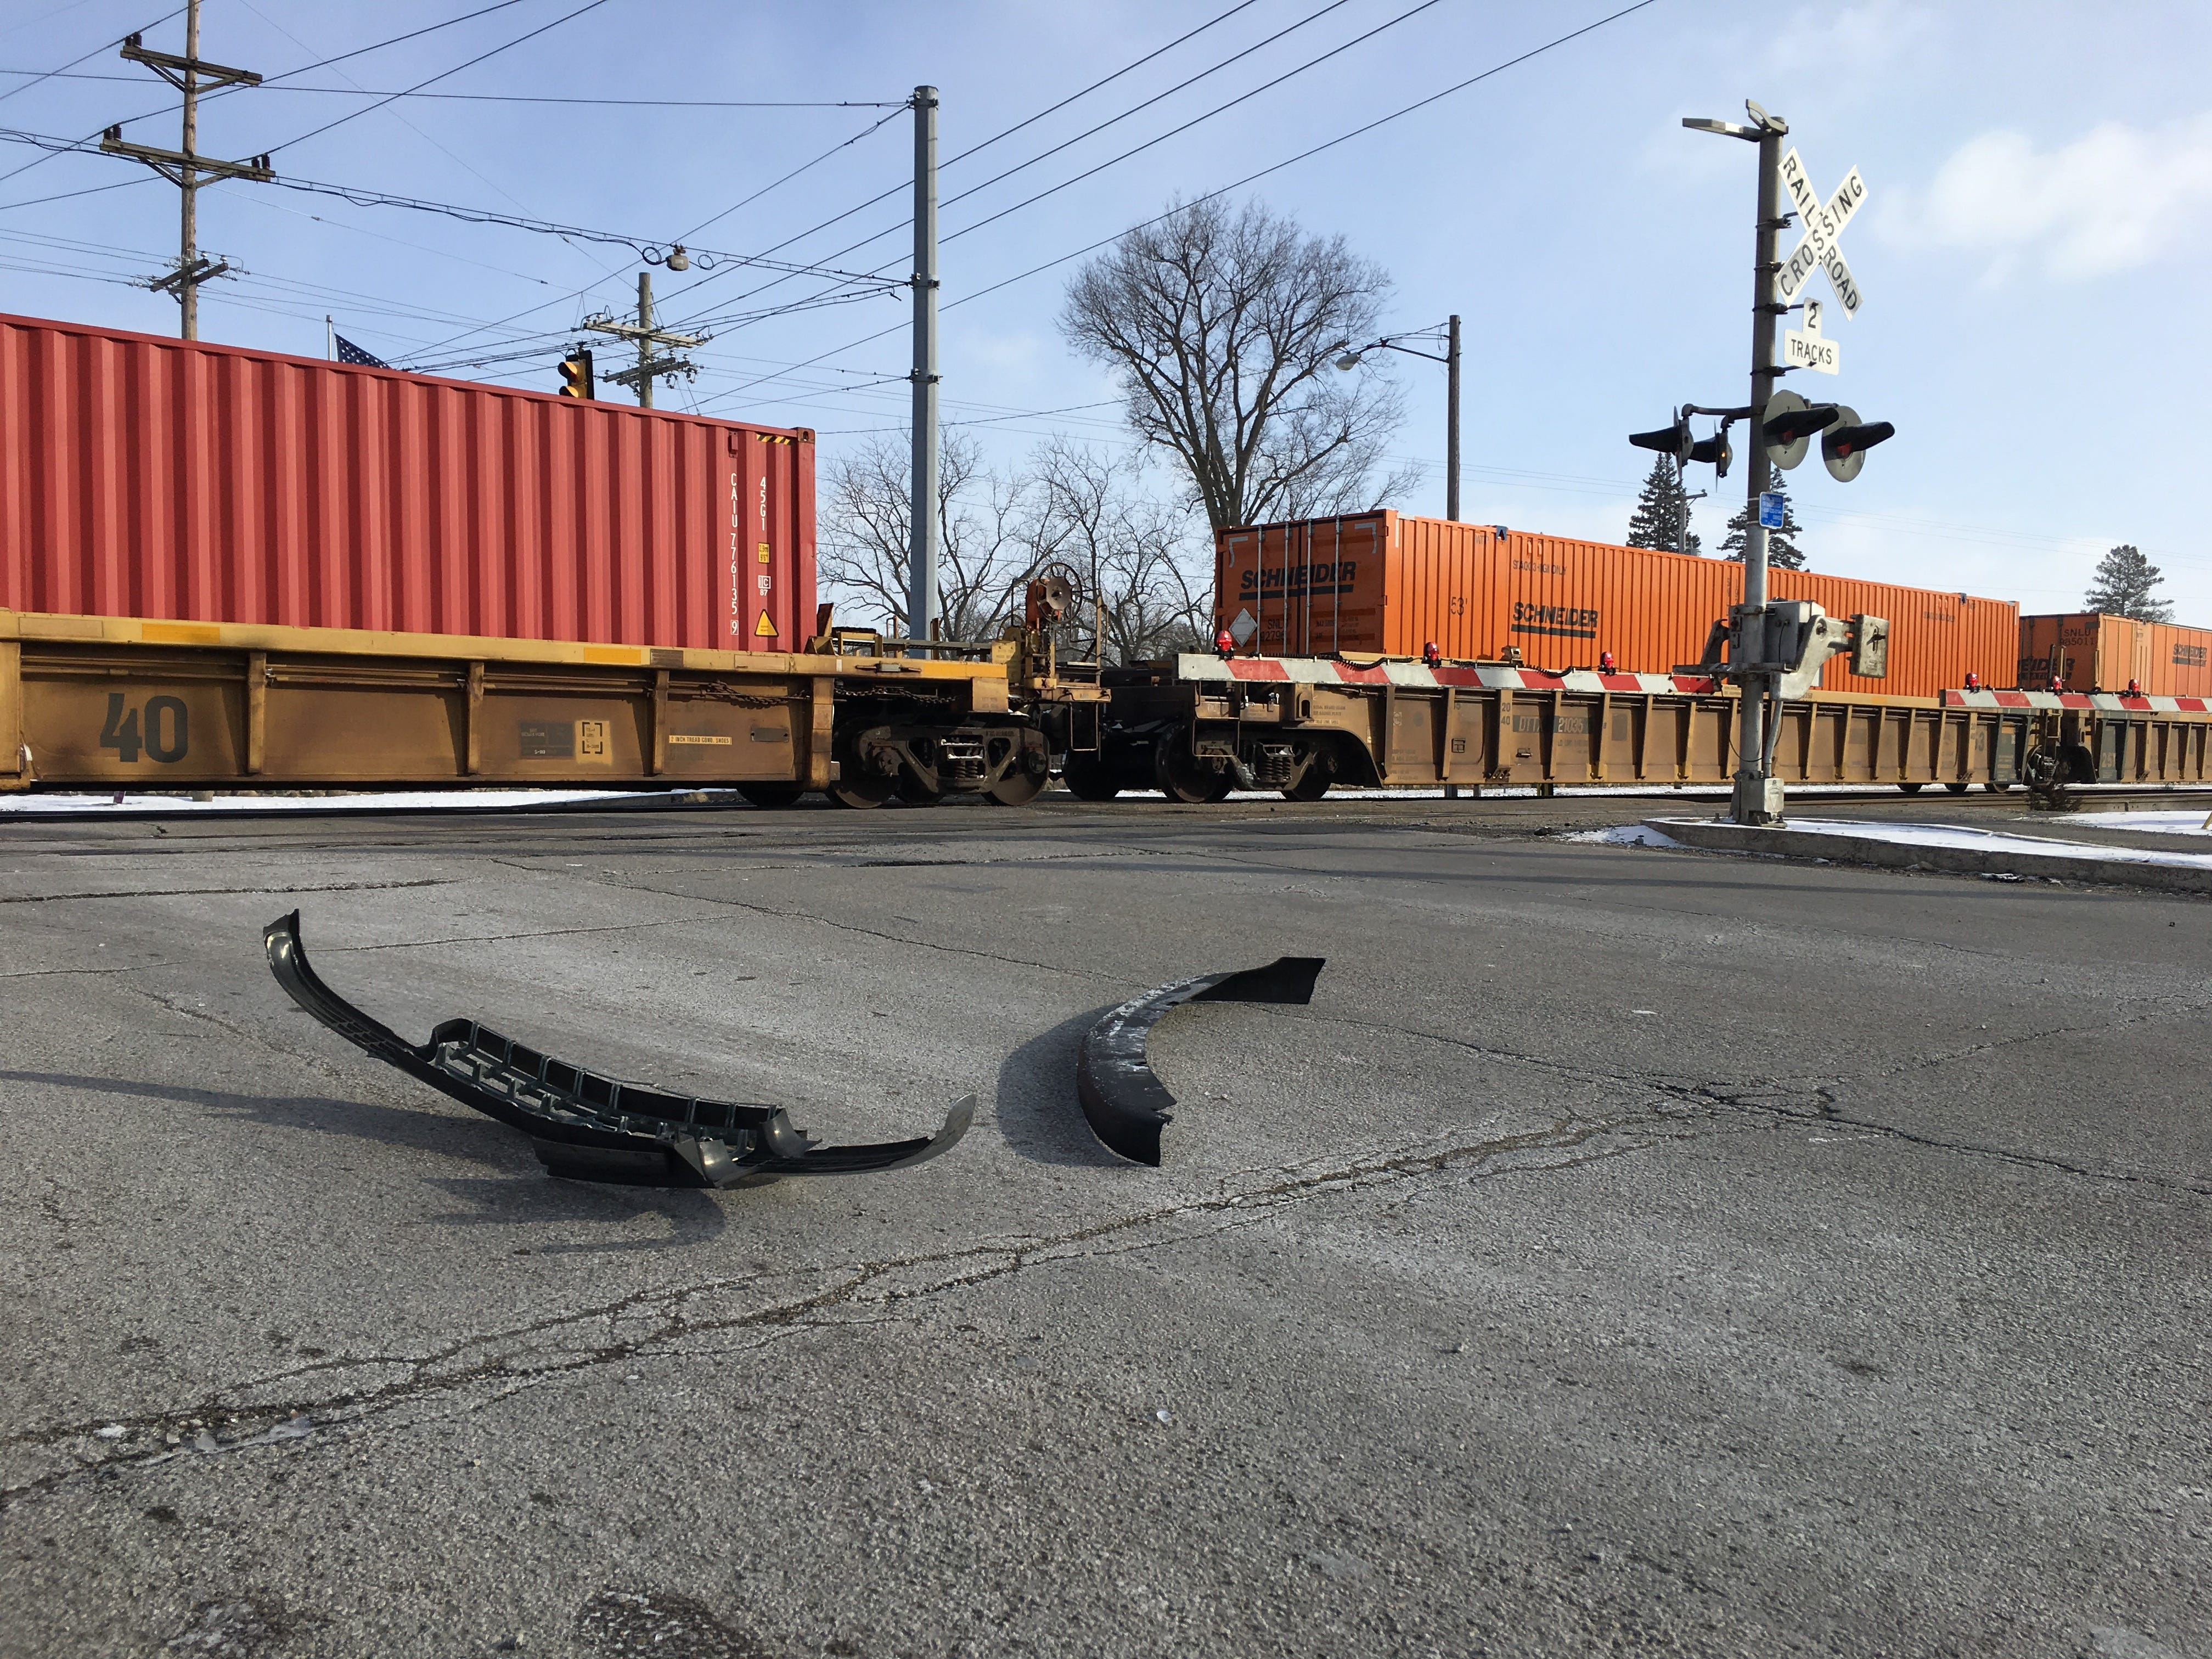 Crash debris is seen at Batavia-Kilgore, the scene of a fatal train-vehicle crash Monday morning. The train pushed the vehicle down the tracks, west of this location.